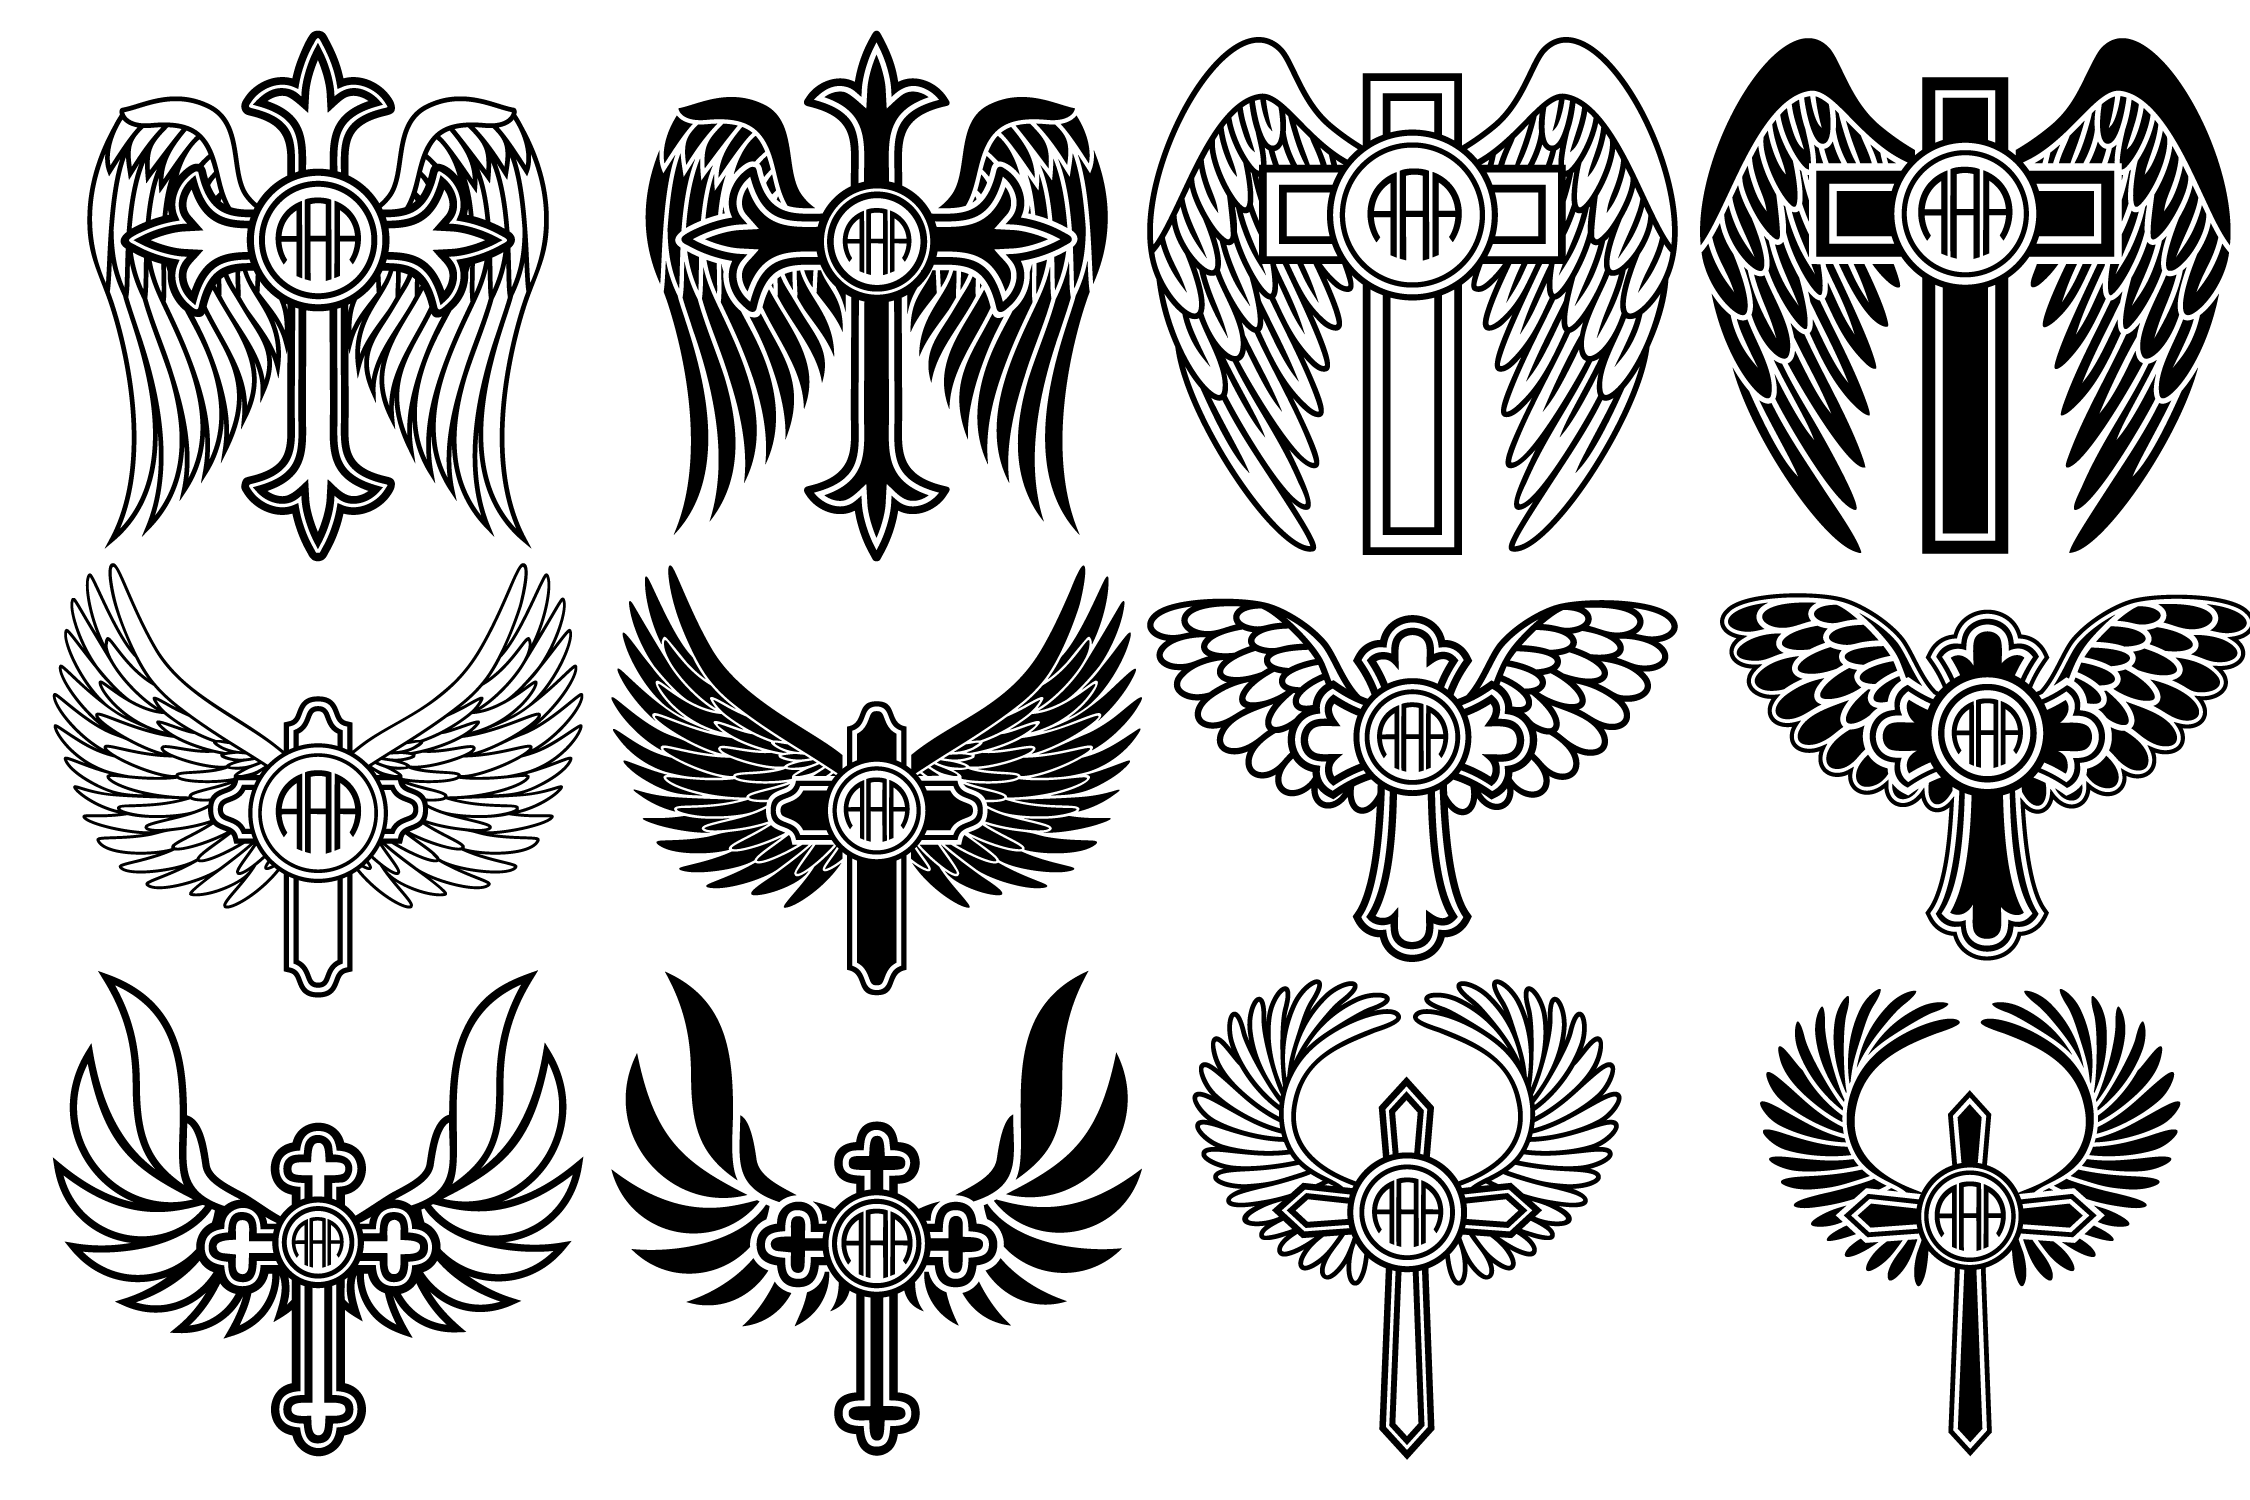 Download Free Cross With Wings Svg Cross Svg Angel Wings Graphic By Yulnniya for Cricut Explore, Silhouette and other cutting machines.